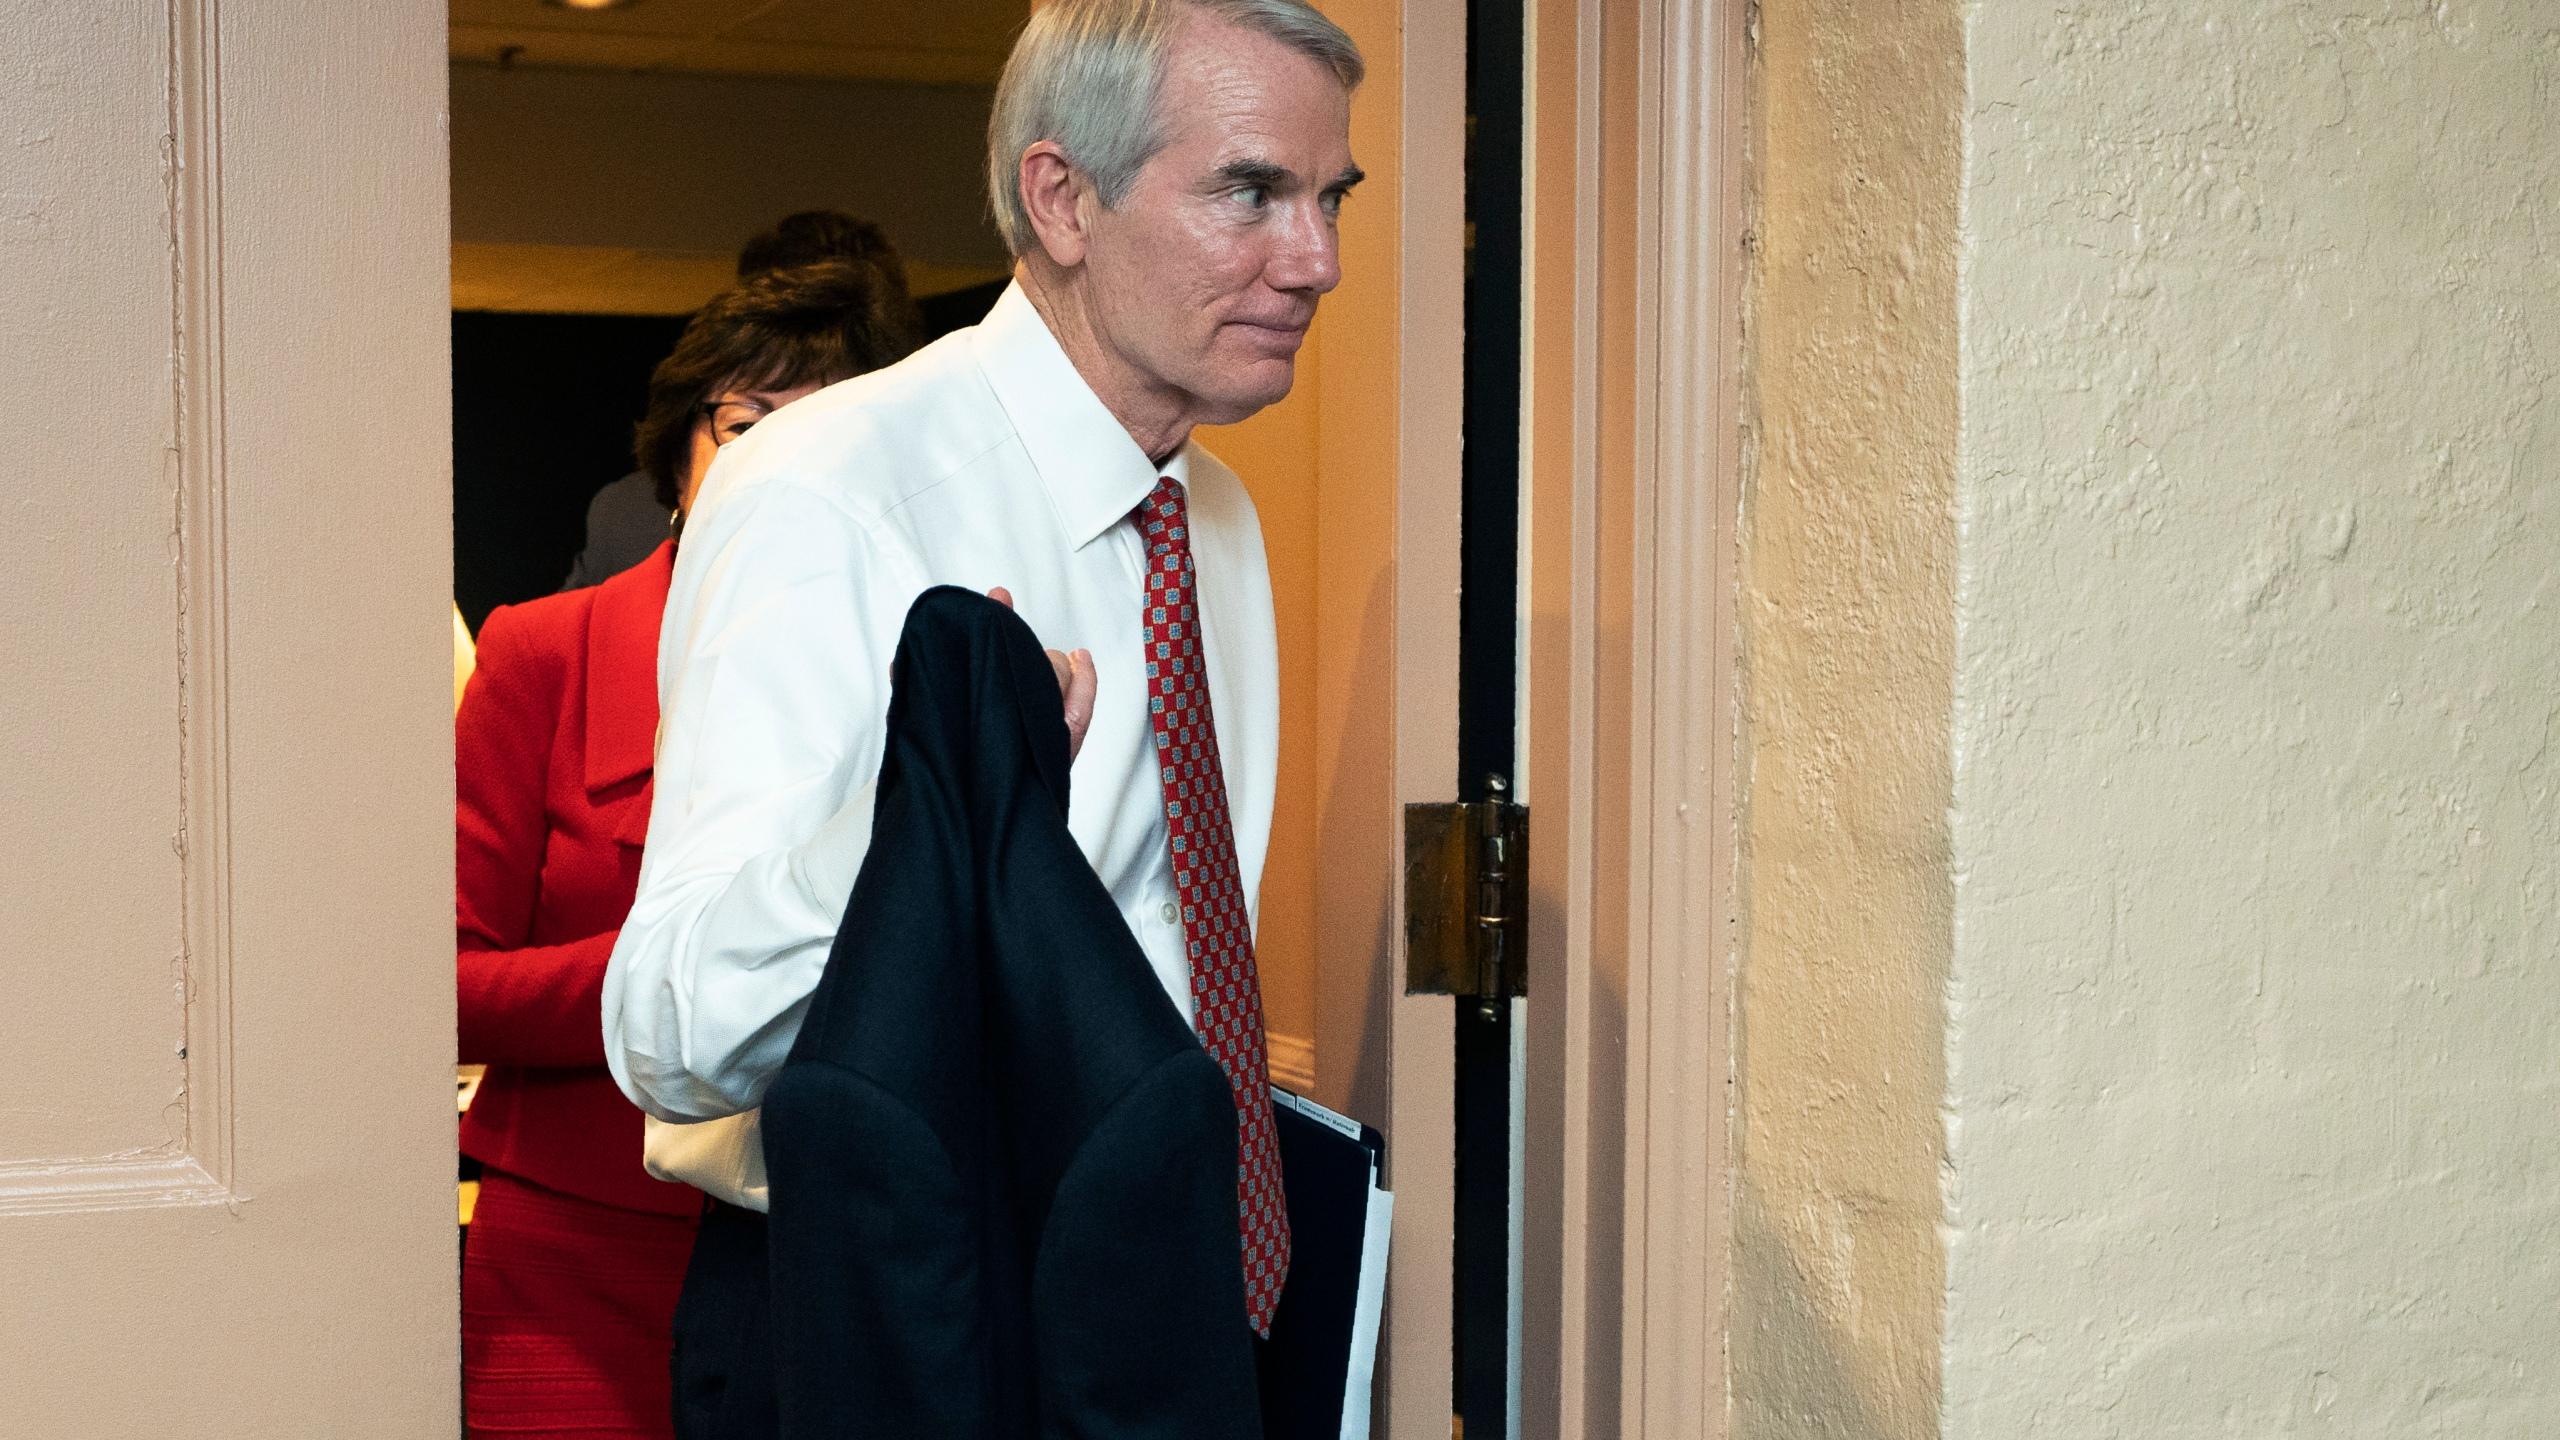 Sen. Rob Portman, R-Ohio, leaves a closed-door bipartisan infrastructure meeting with a group of senators and White House aides on Capitol Hill in Washington on June 22, 2021. (AP Photo/Manuel Balce Ceneta)